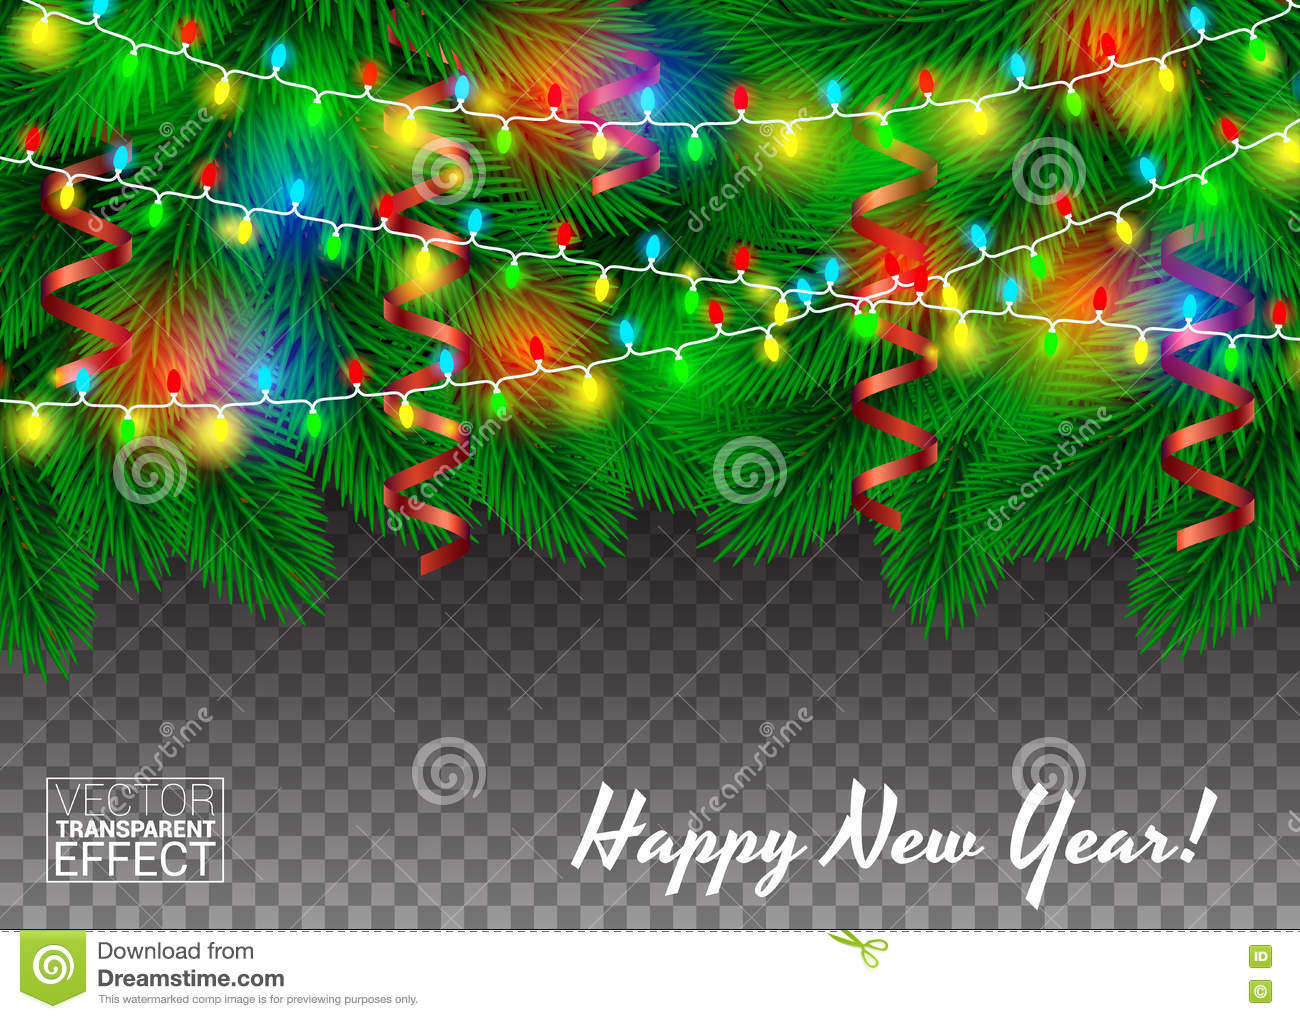 Garlands And Confetti On A Christmas Tree Green Branches Transparent Background